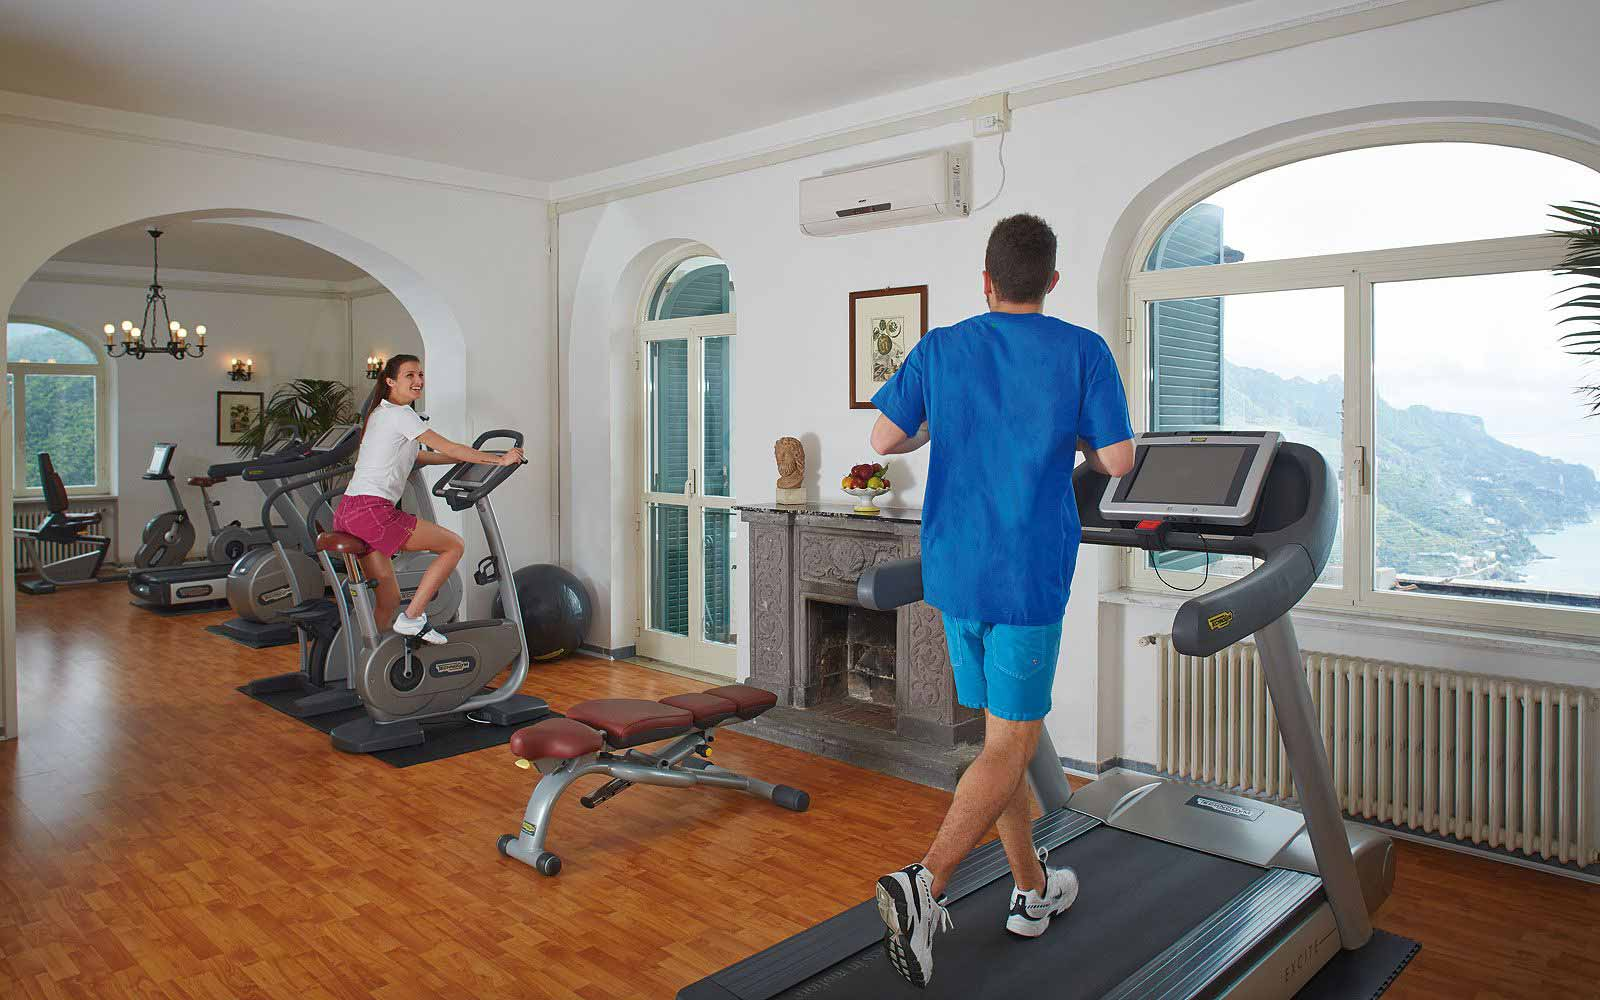 Gym at Belmond Hotel Caruso